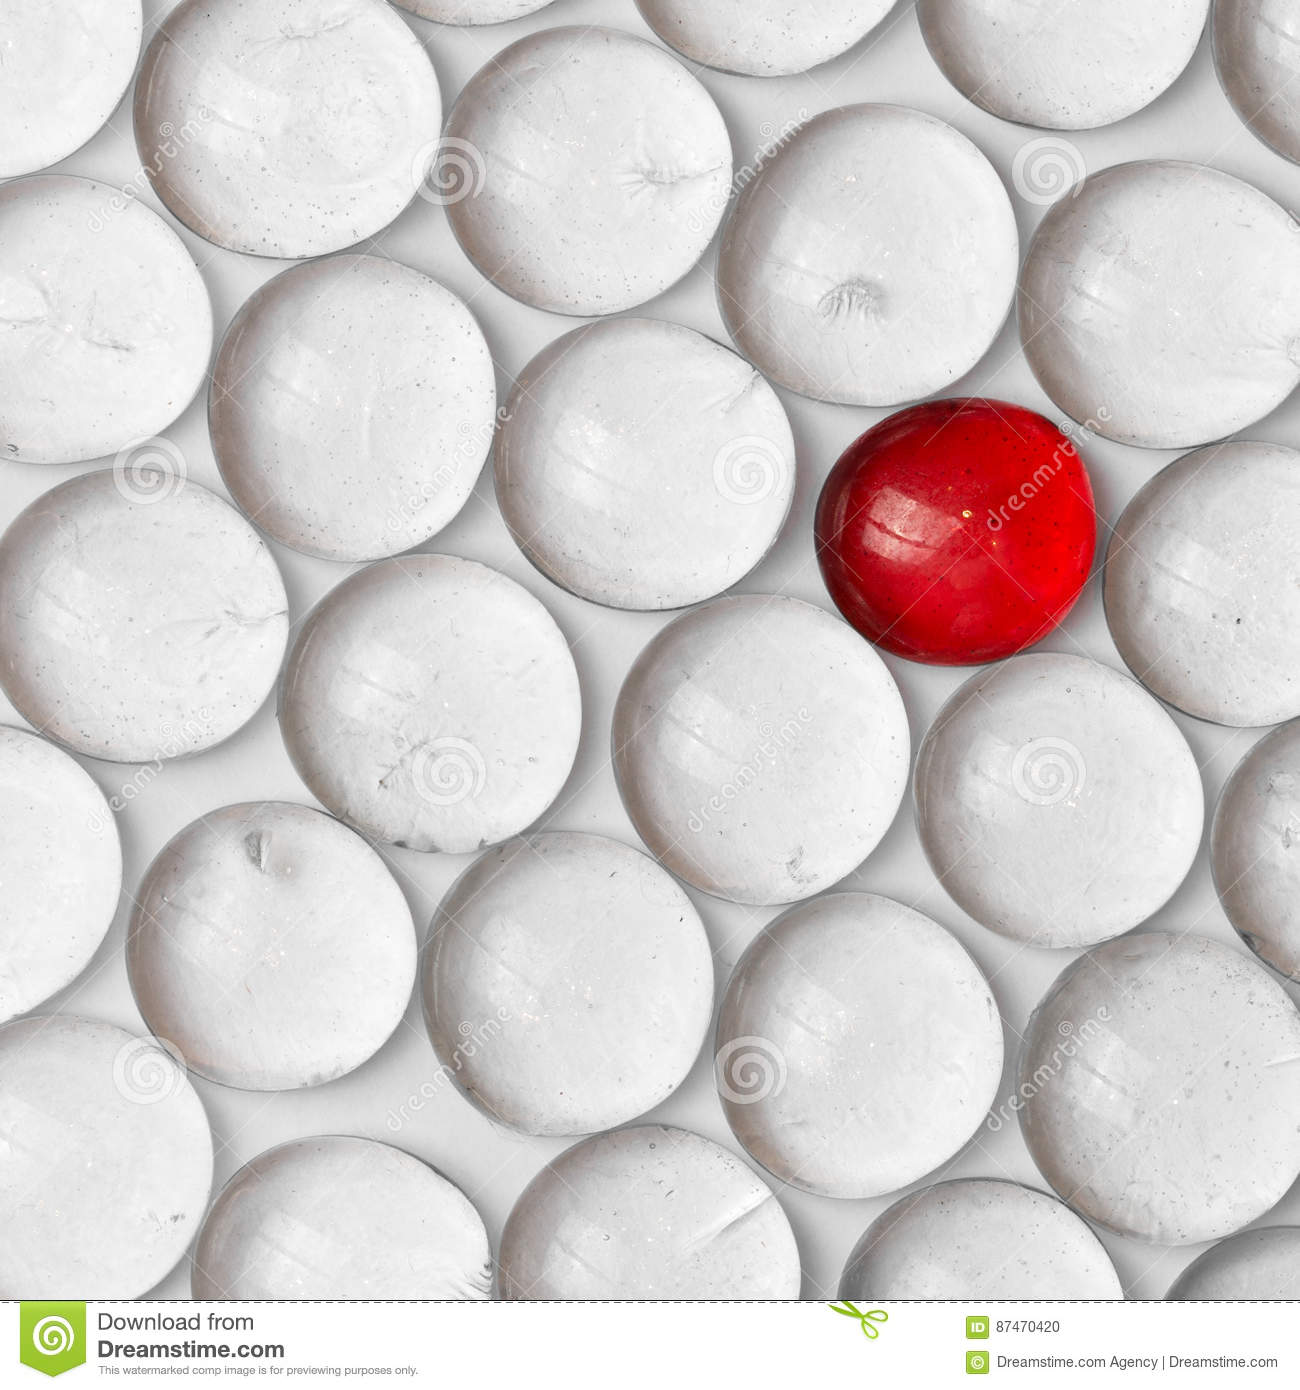 Download A Red Marble In A Crowd Of White Marbles Stock Photo - Image of game, marbles: 87470420